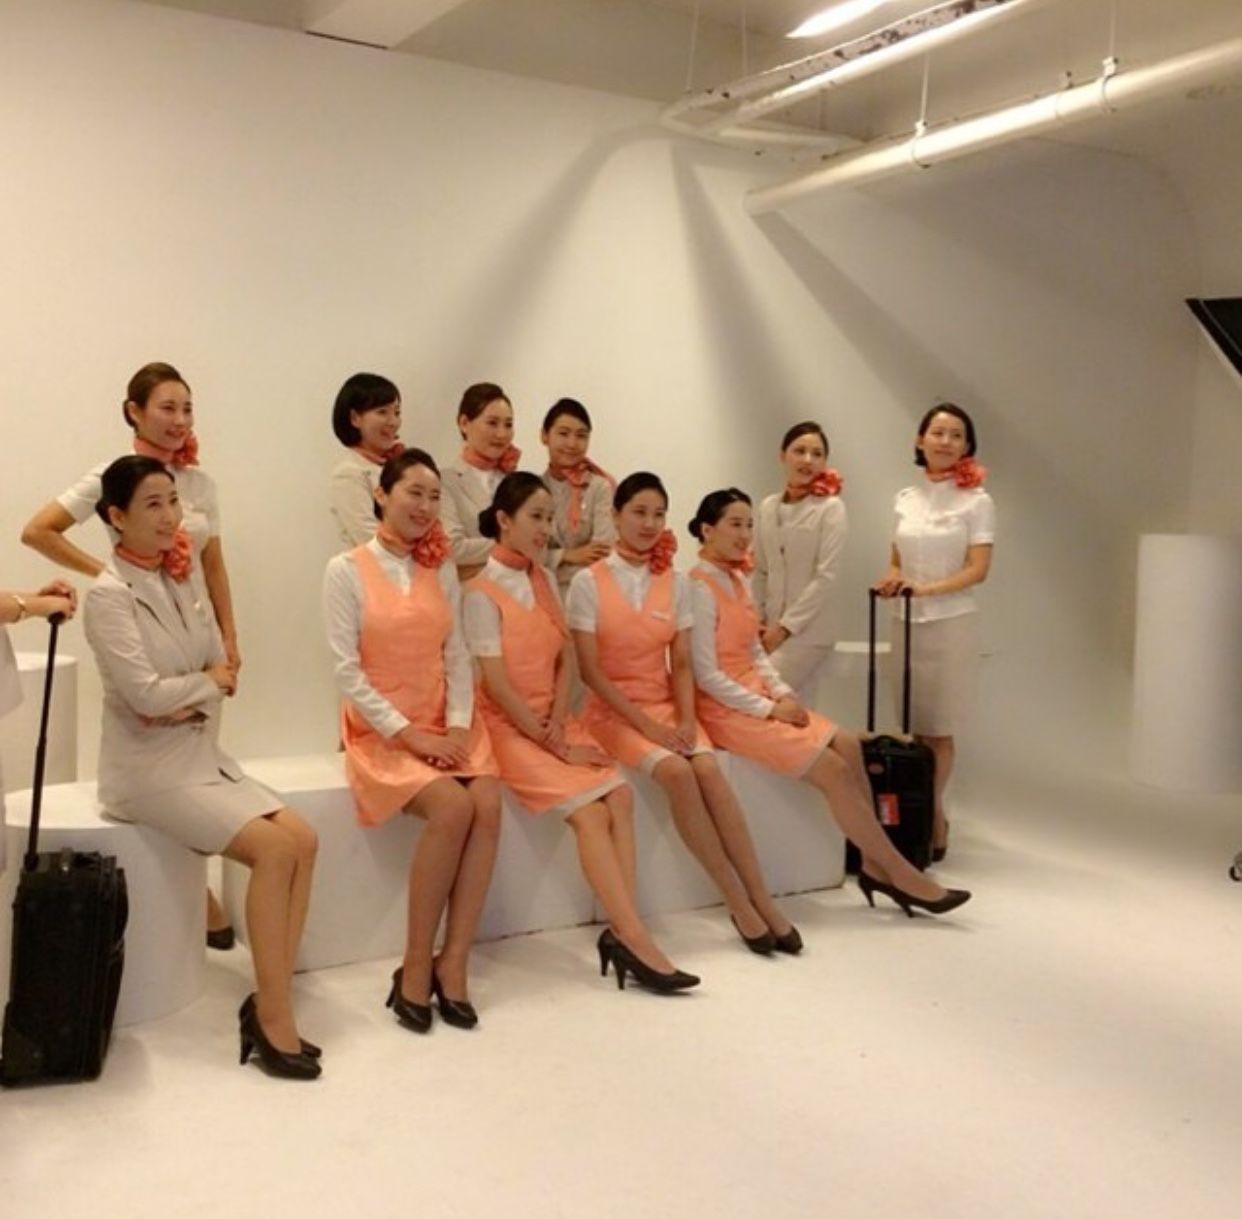 【South Korea】 JEJU Air cabin crew (old uniform) / チェジュ航空